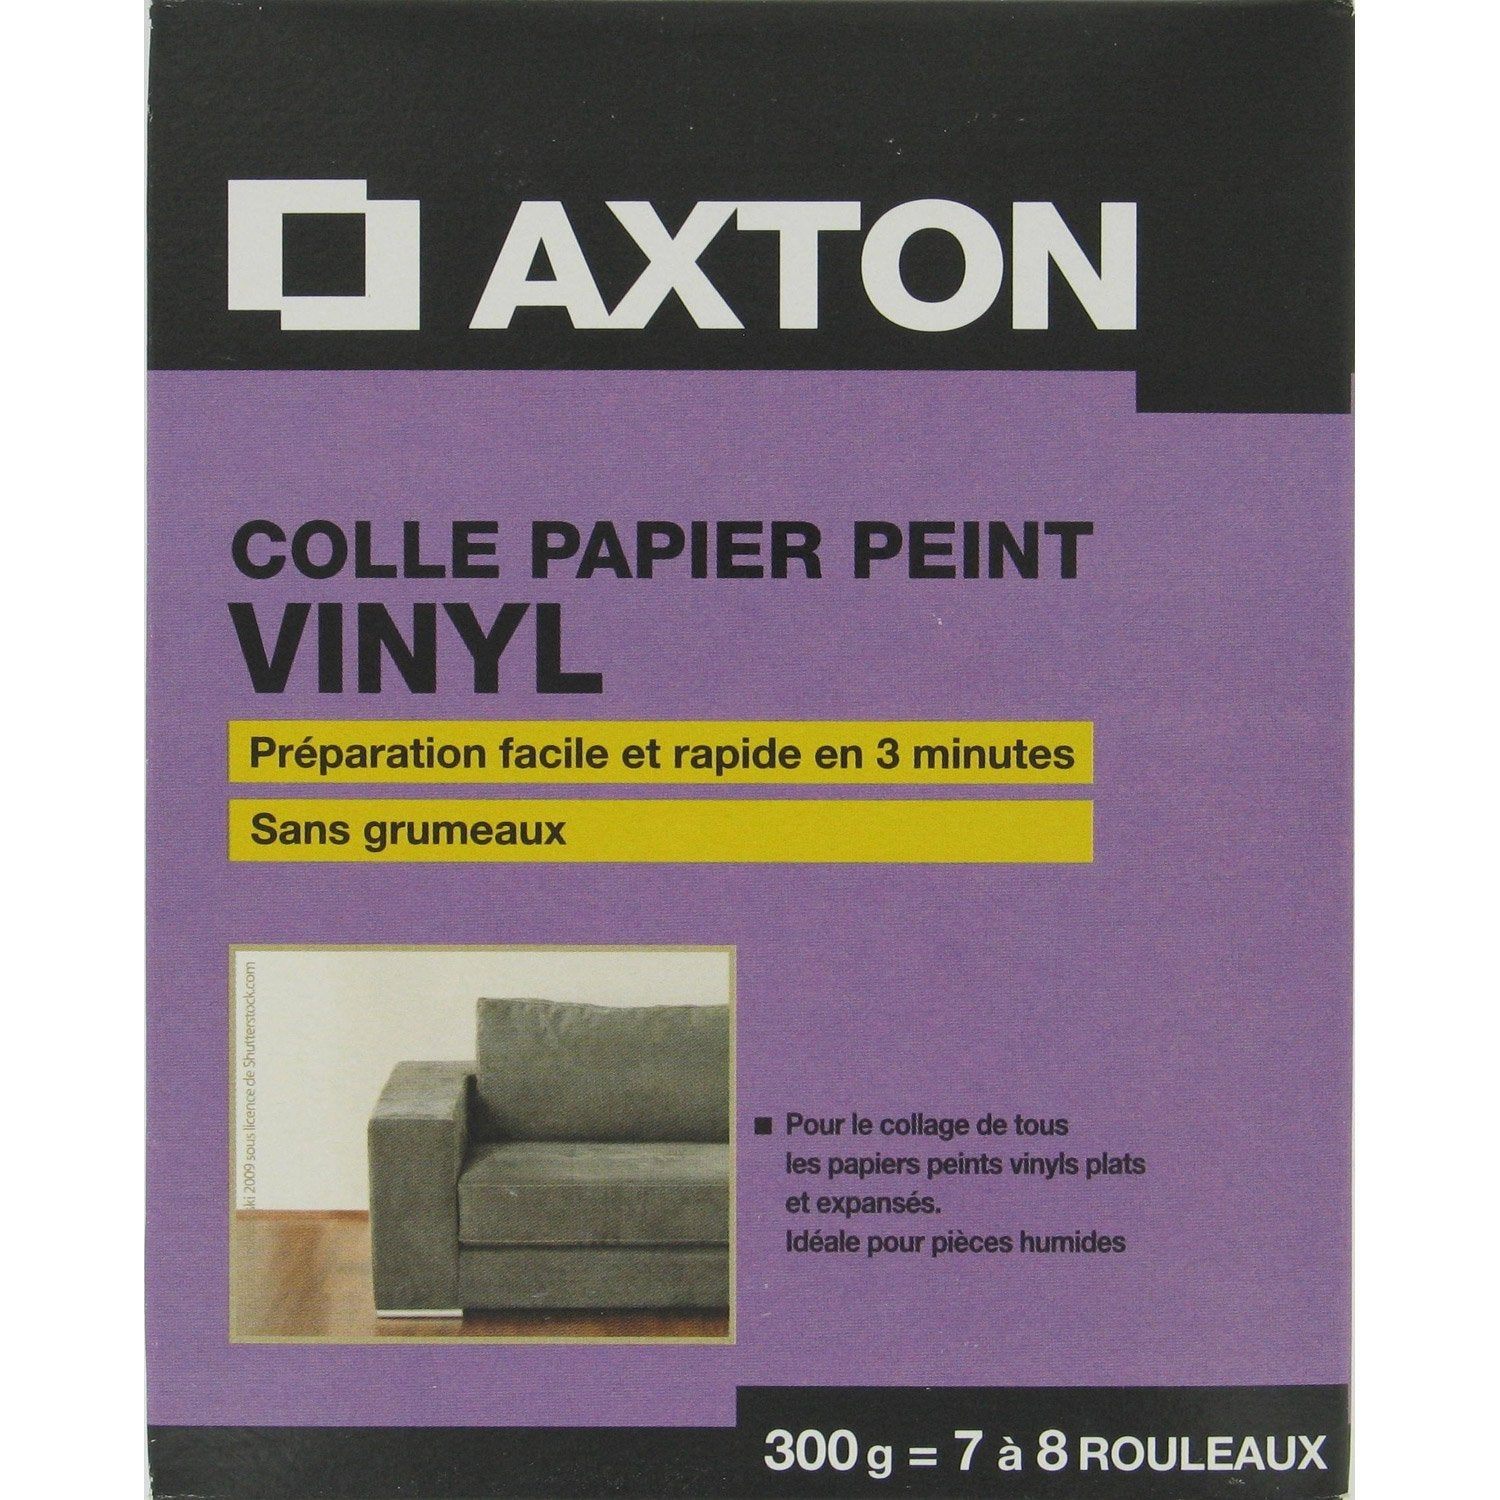 colle papier peint vinyle axton 0 3 kg leroy merlin. Black Bedroom Furniture Sets. Home Design Ideas